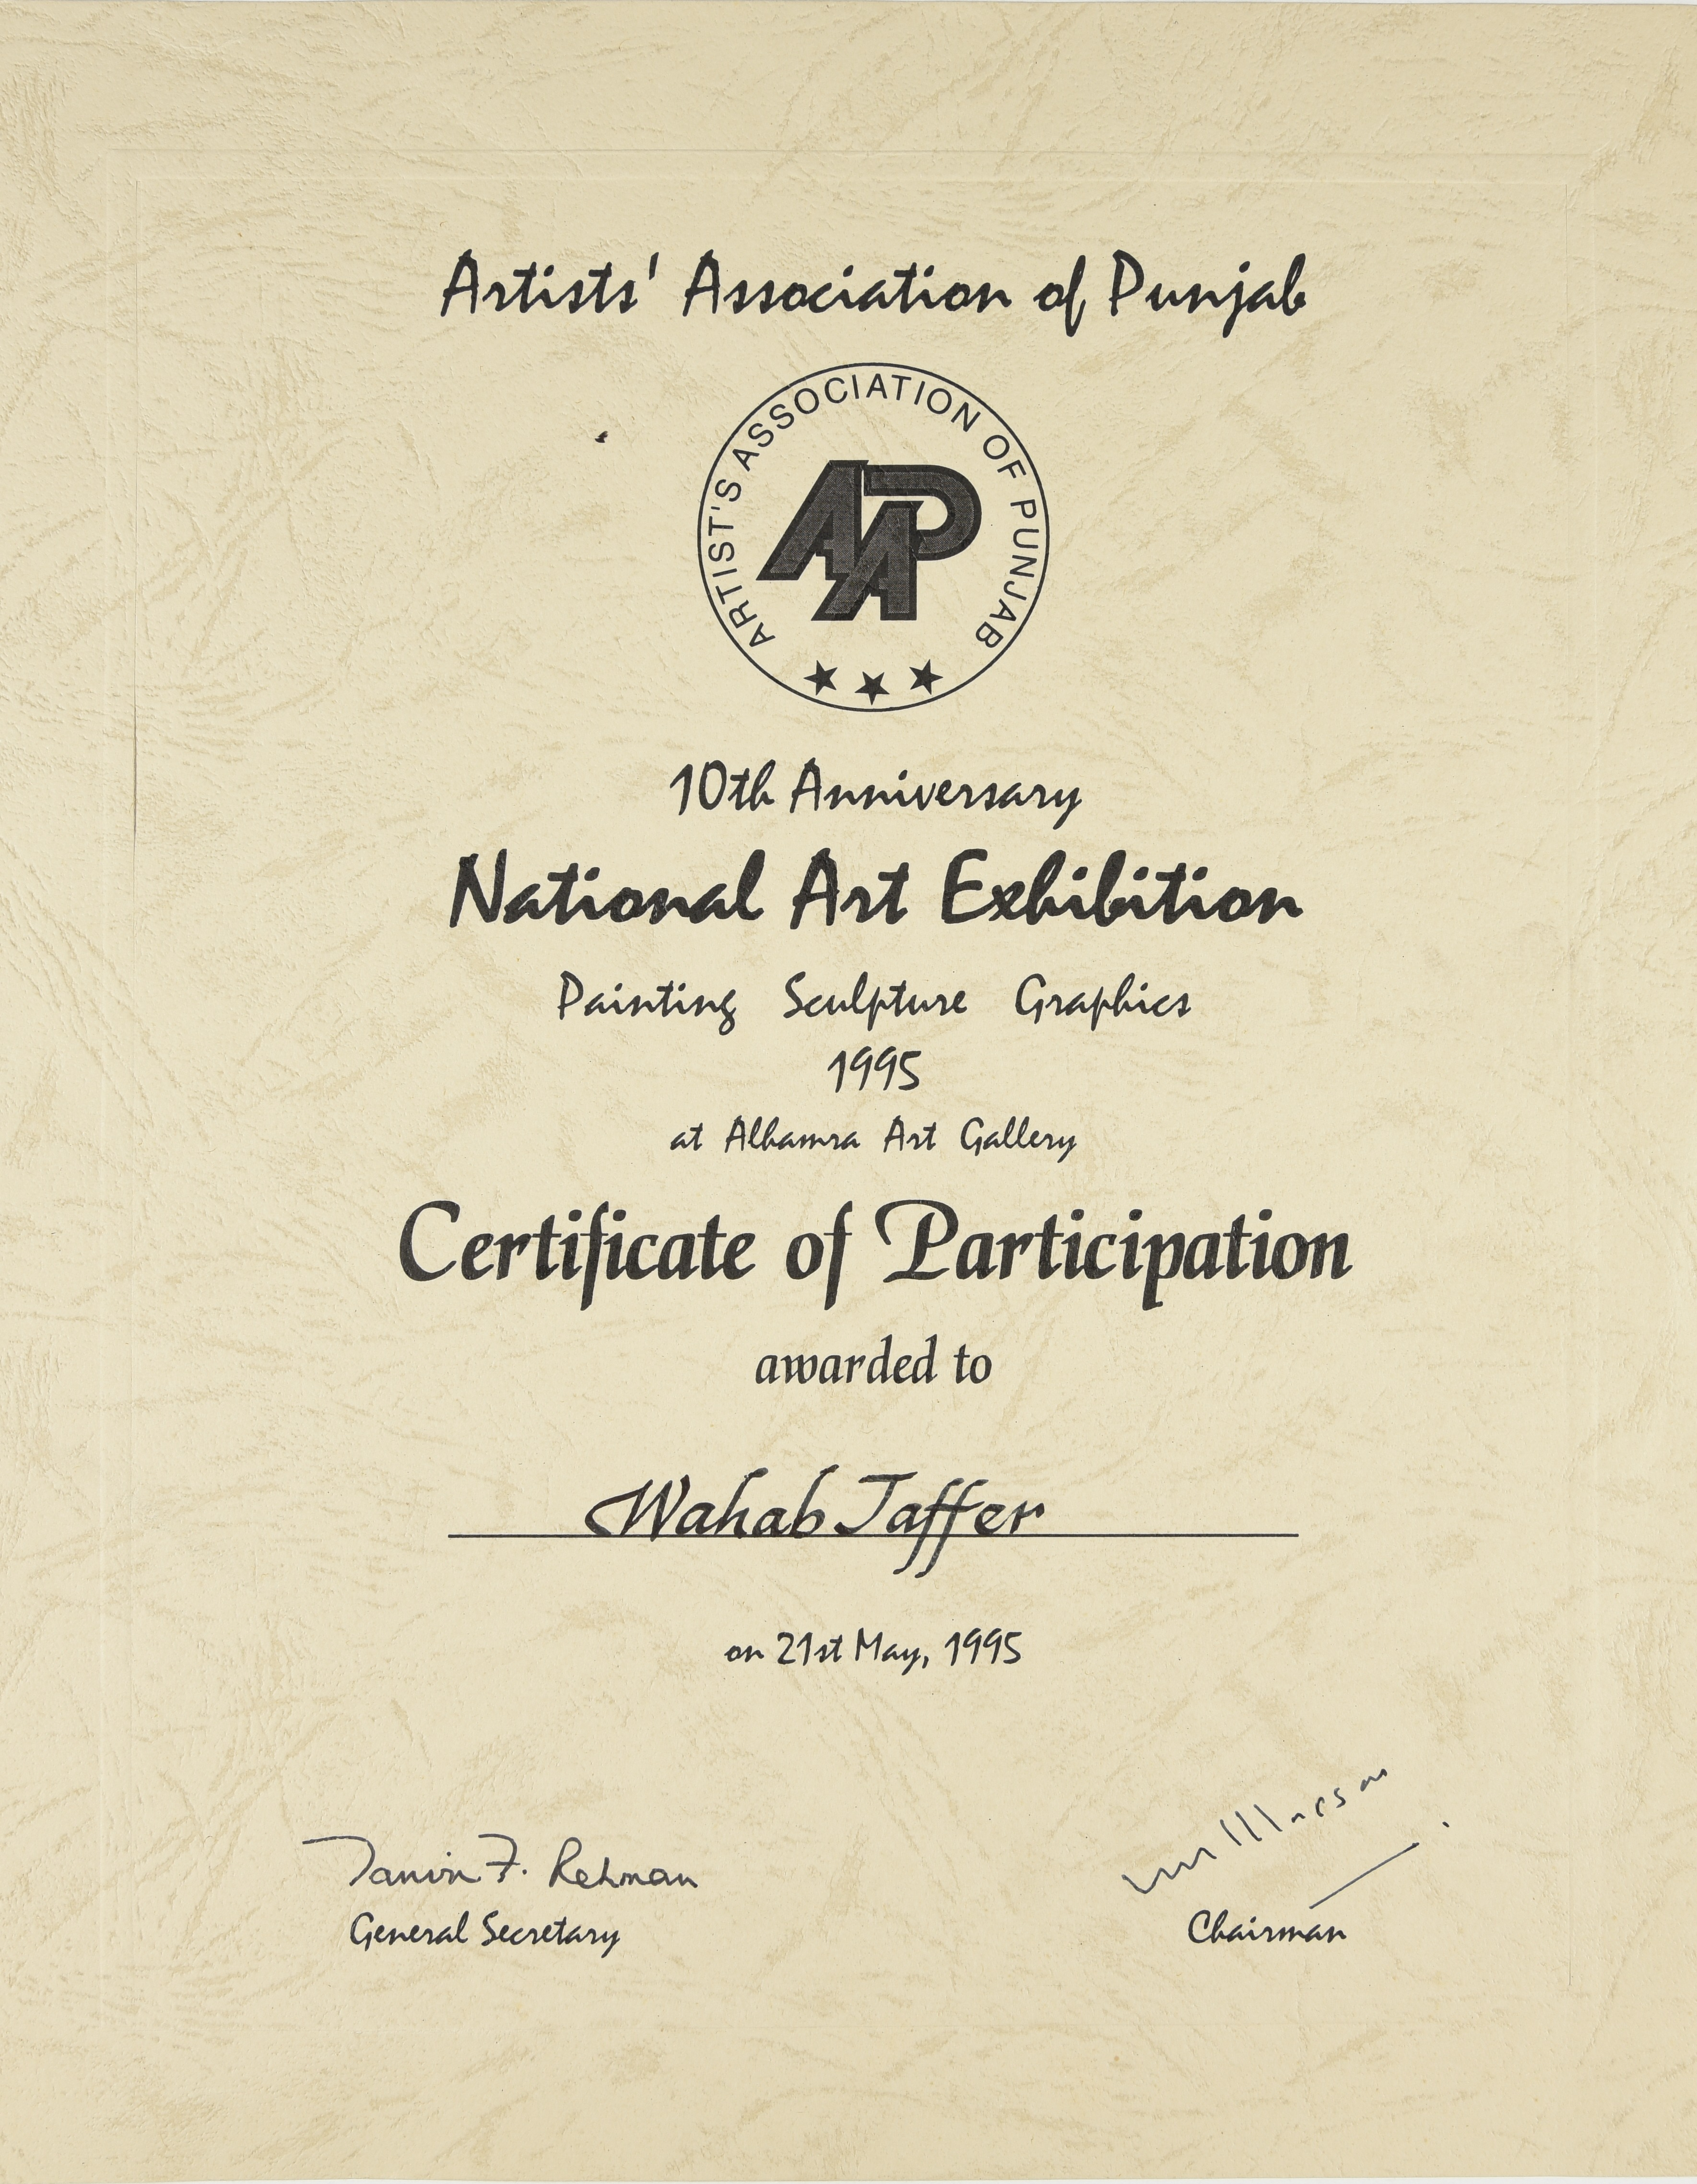 Collection Search Certificate Of Participation For The 10th